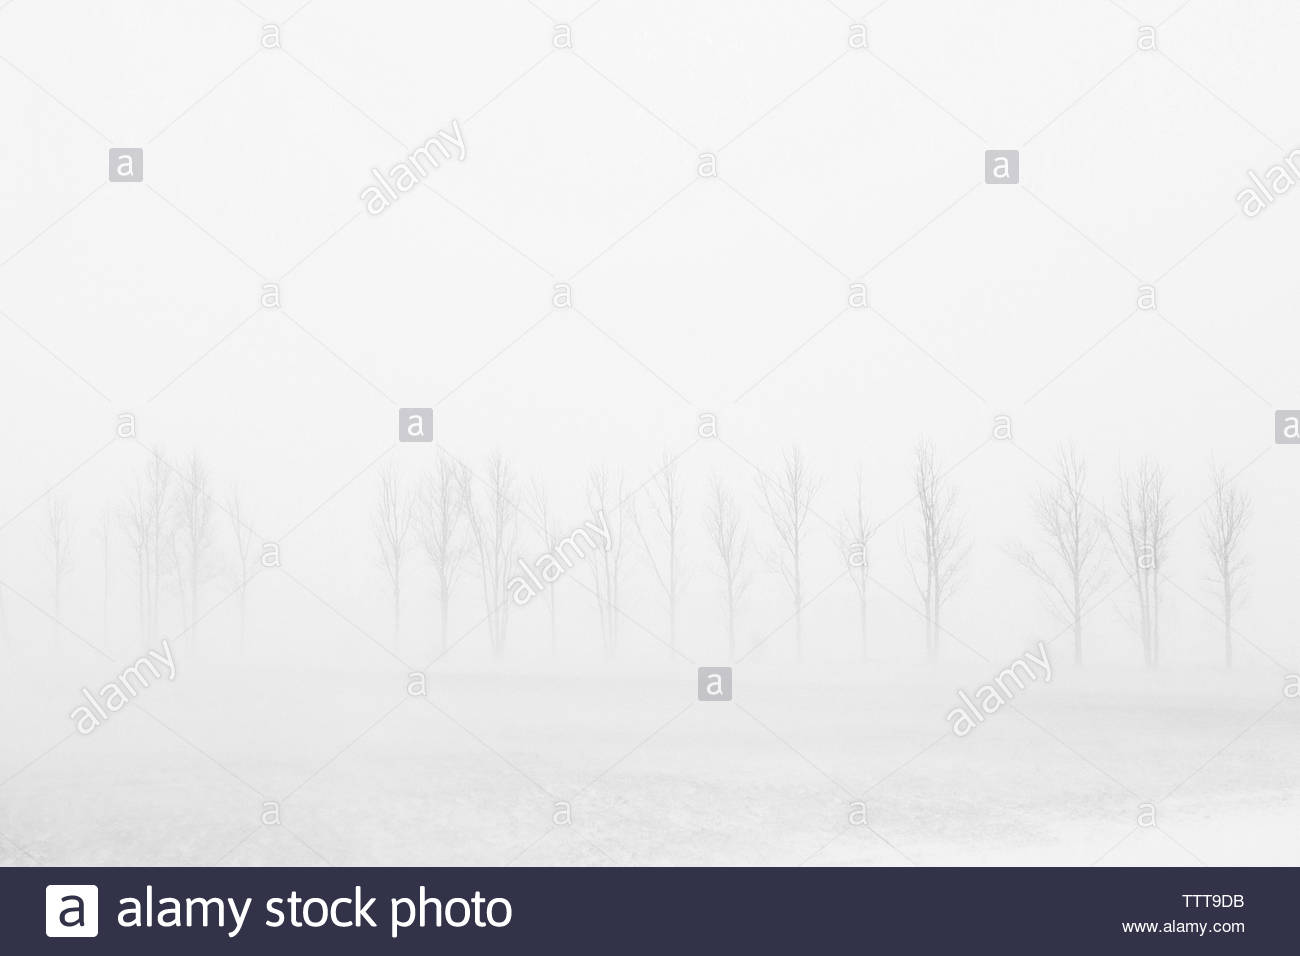 Scenic view of bare trees during blizzard - Stock Image